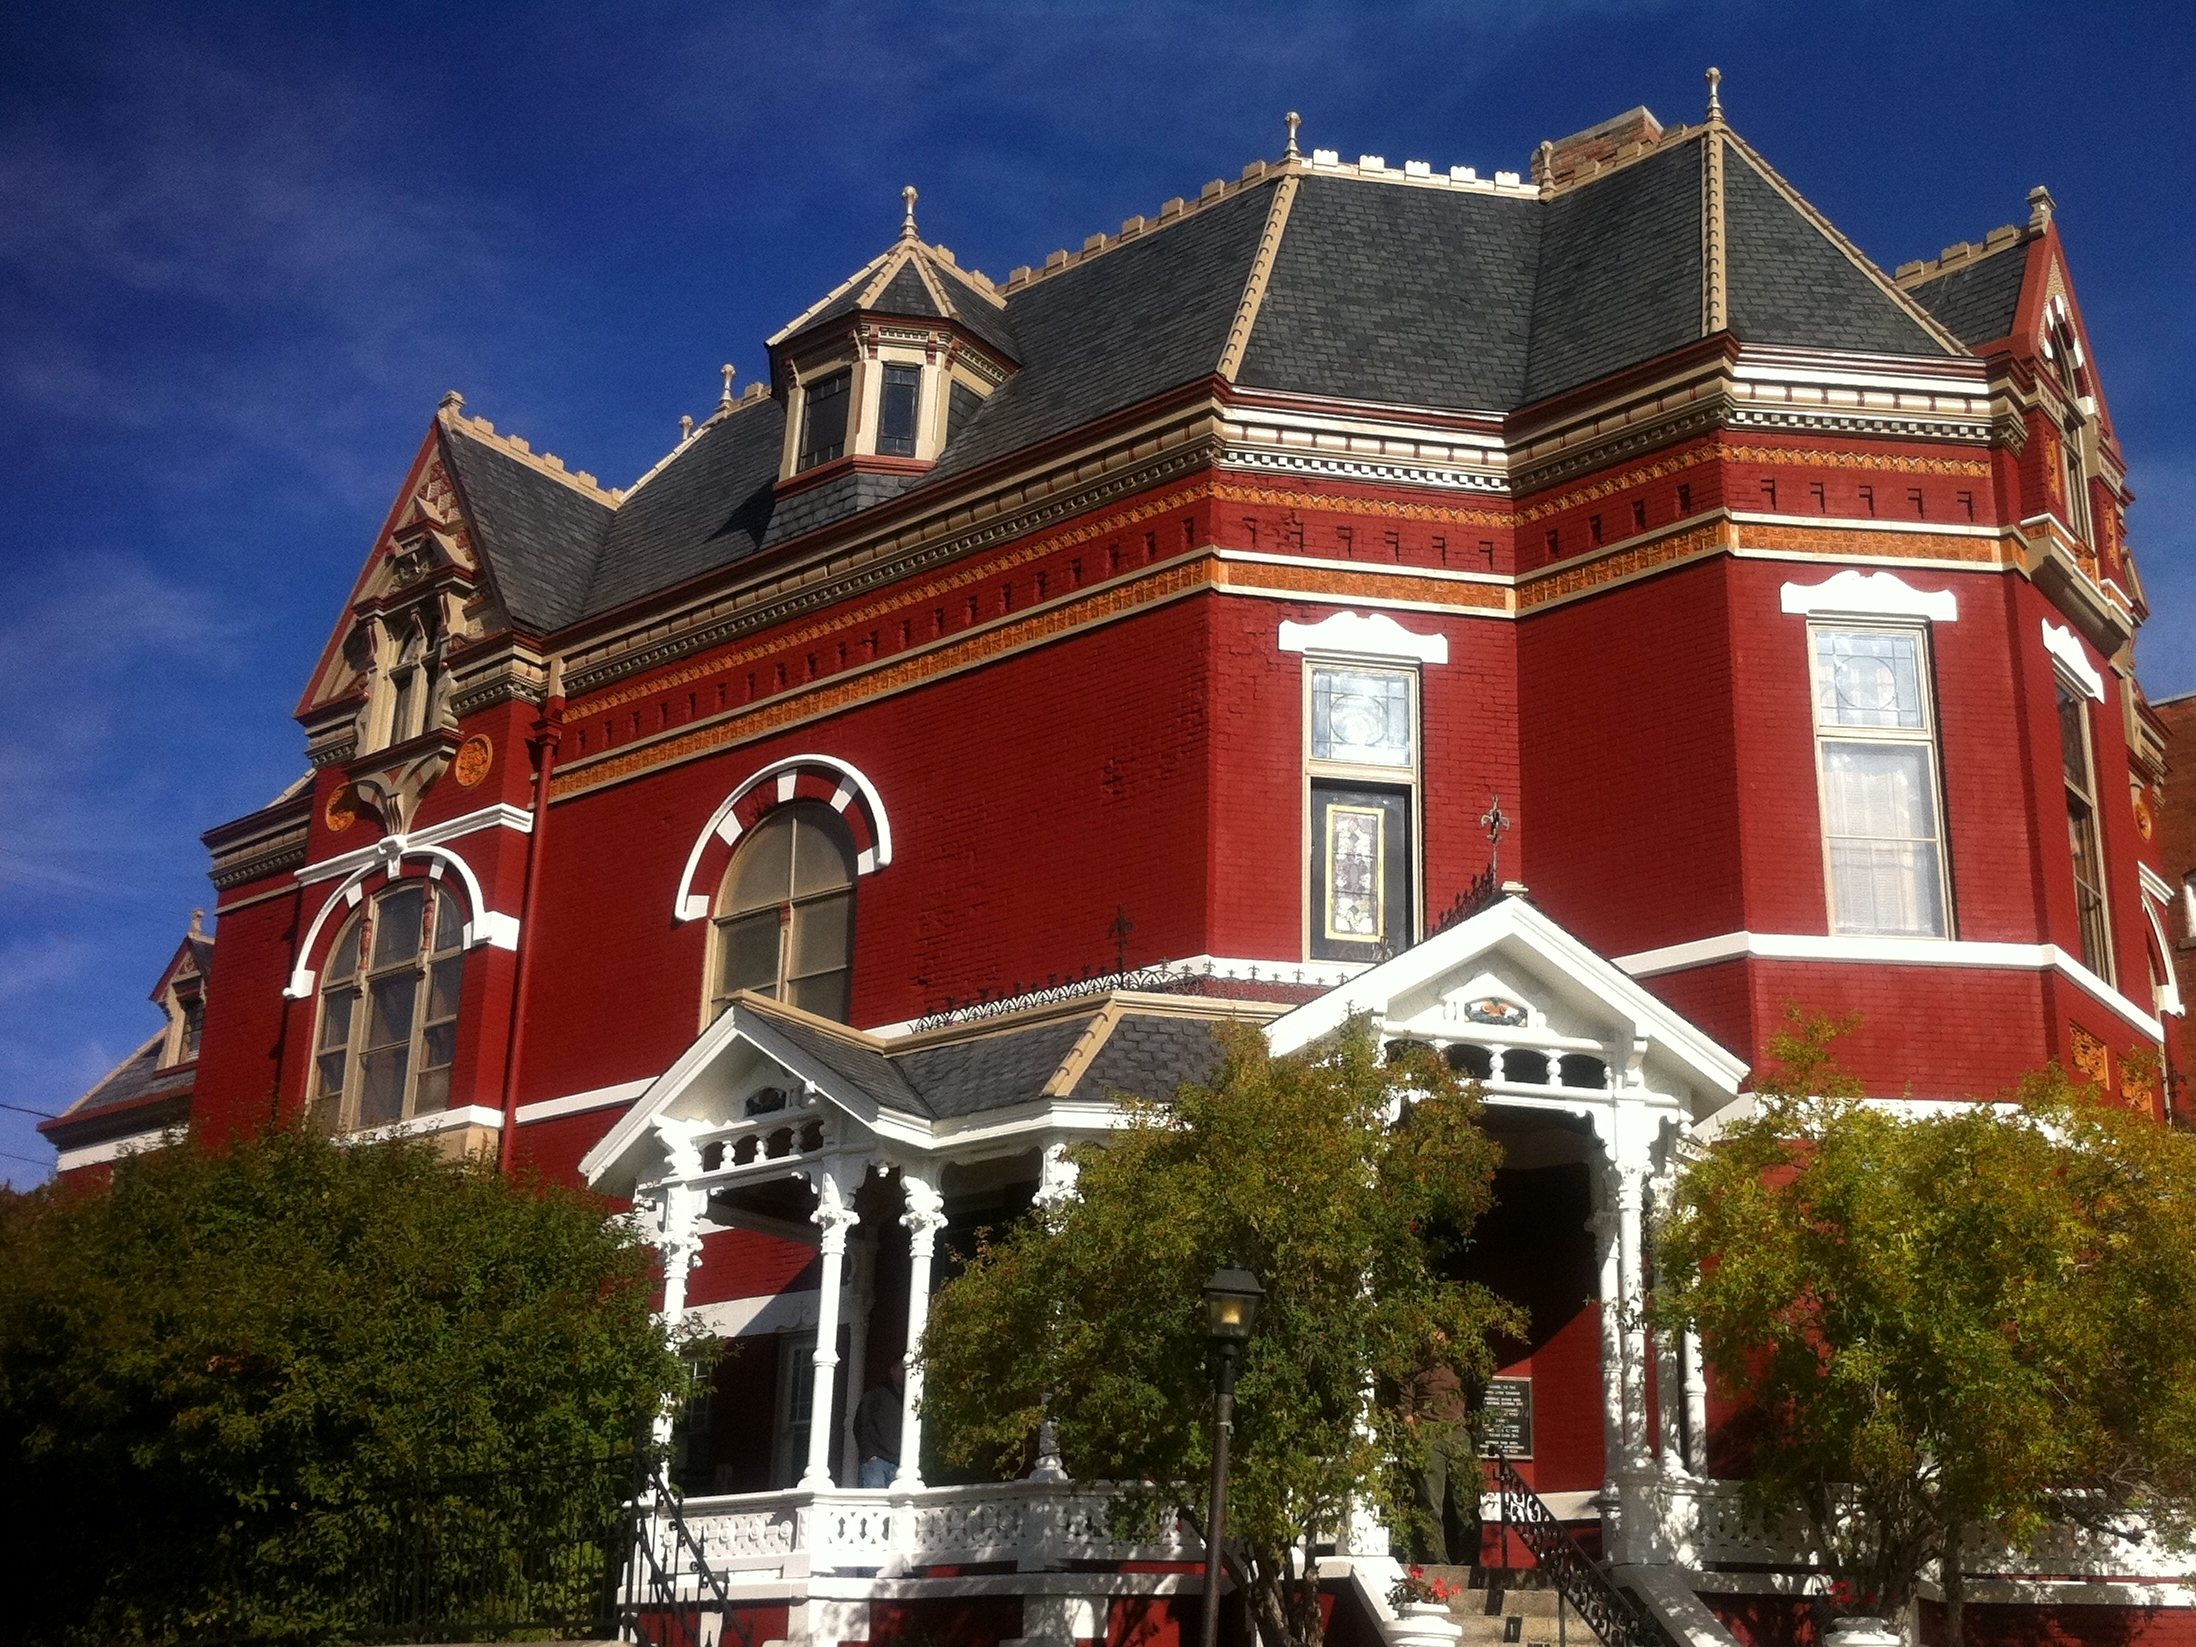 The Copper King Mansion, the W.A. Clark home at 219 W. Granite St., Butte, Montana. Built 1884-1888. Daily tours are offered, and one can book a room in the bed and breakfast athttp://www.copperkingmansion.com/.c. Bill Dedman